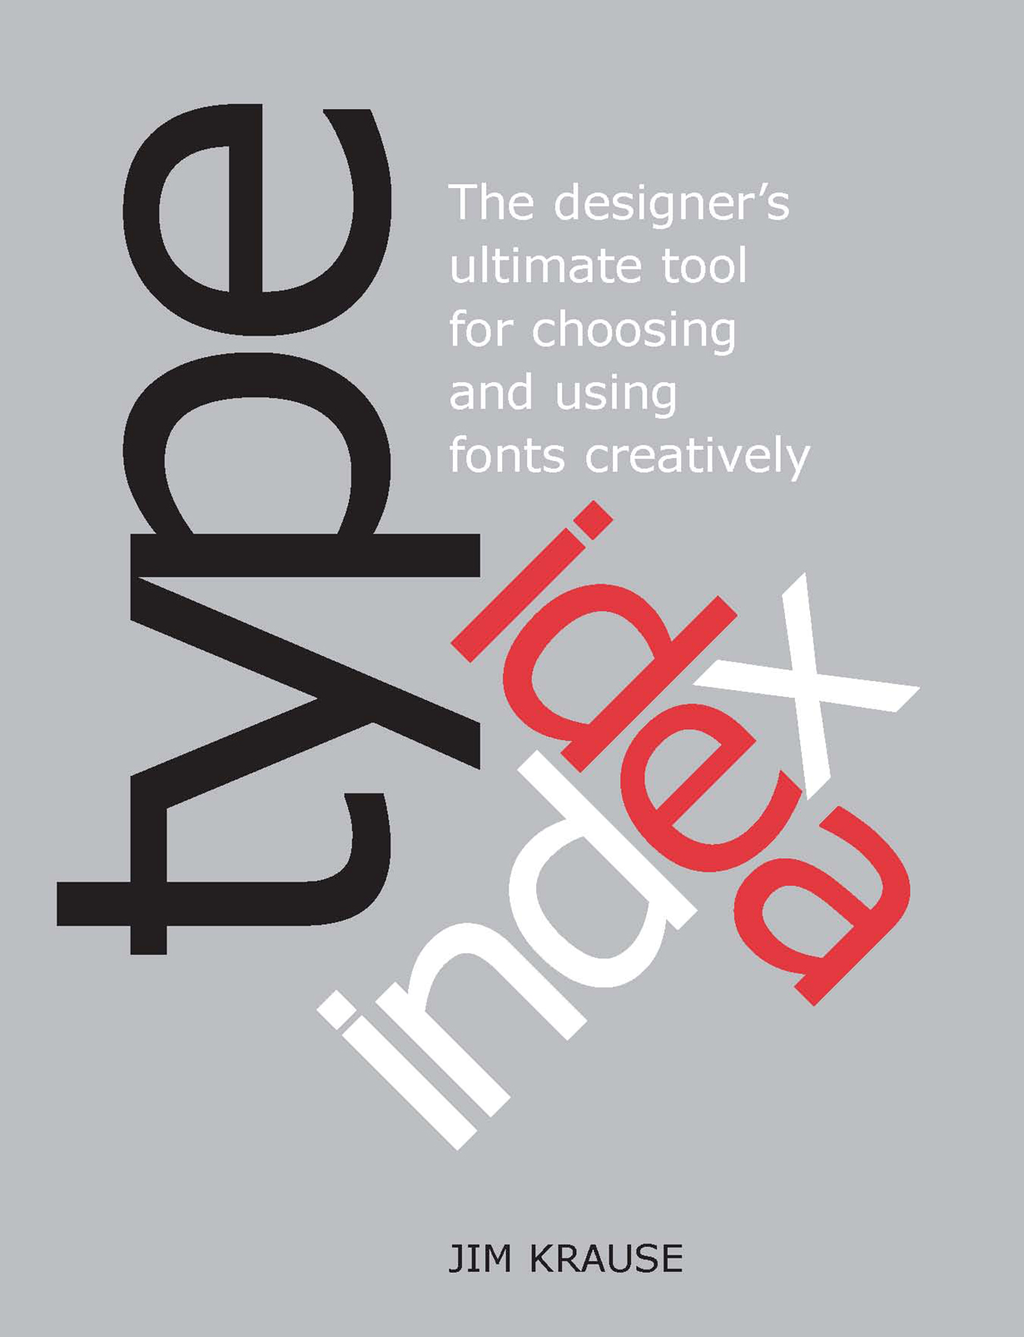 Type Idea Index: The Designer's Ultimate Tool for Choosing and Using Fonts Creatively